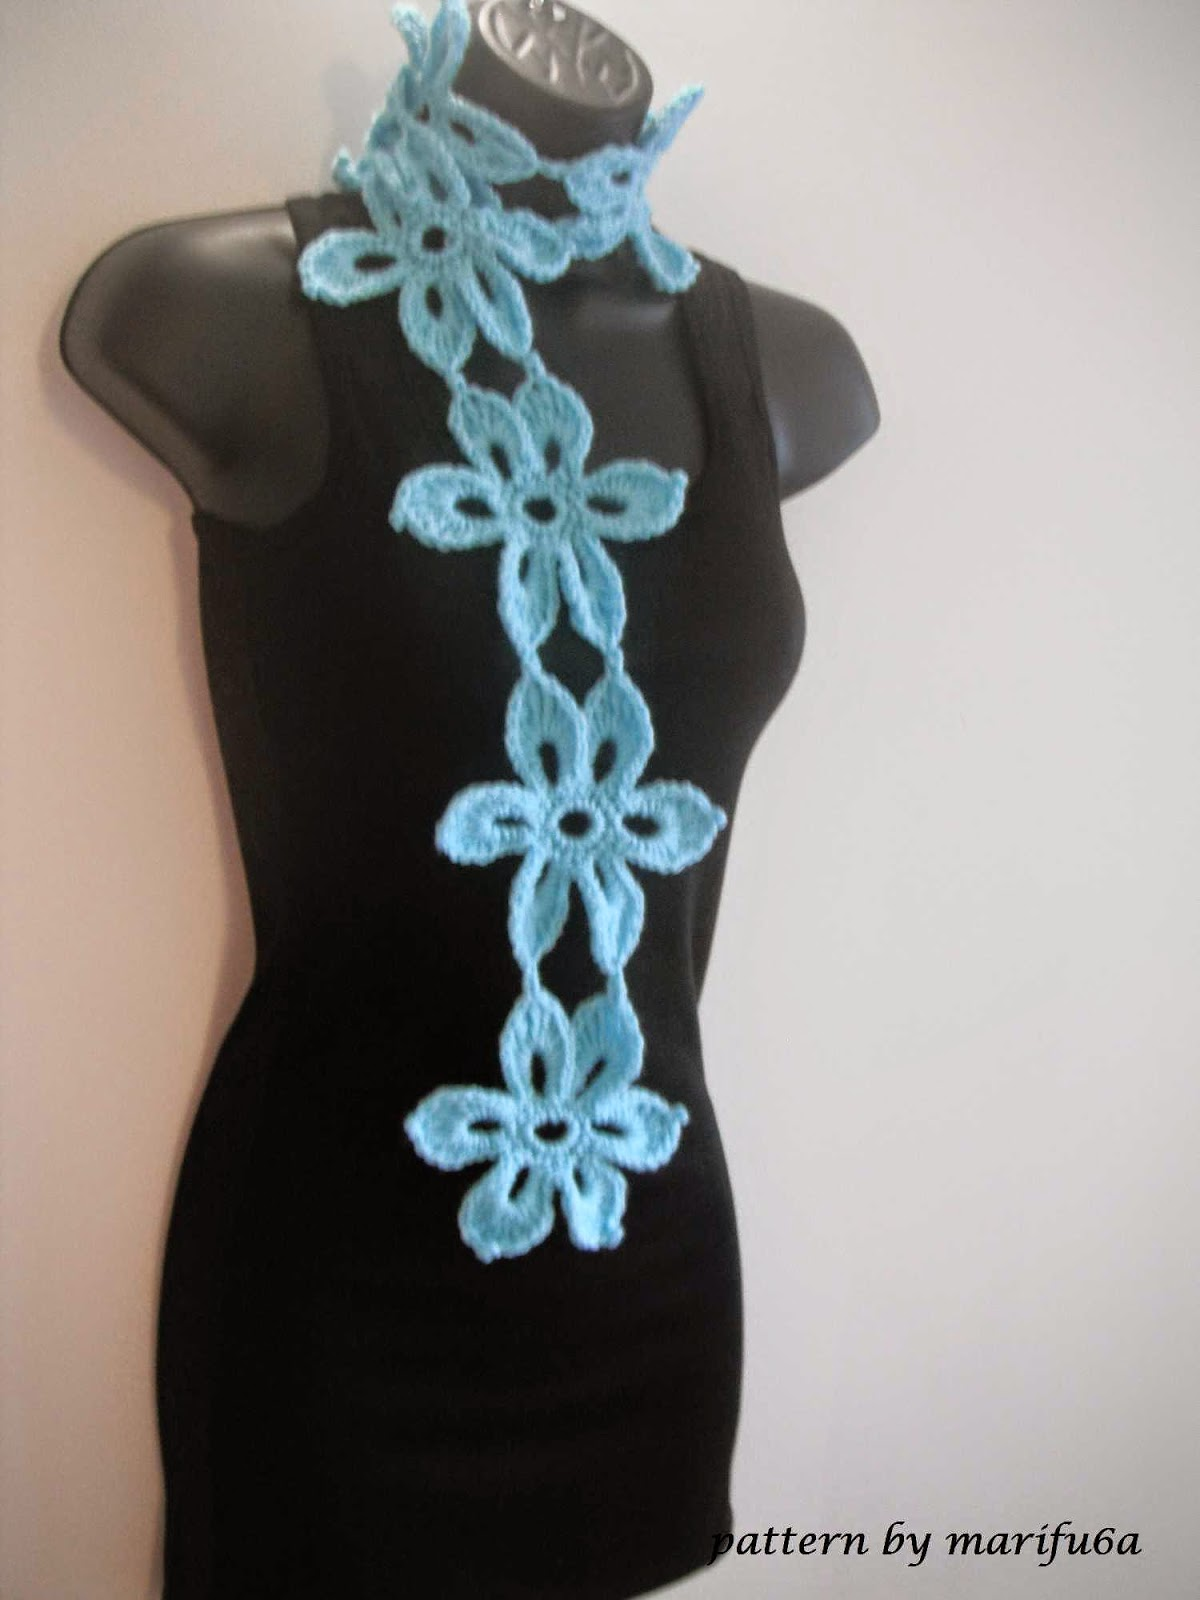 Crochet Stitches Sp : Free crochet patterns and video tutorials: how to crochet mint scarf ...